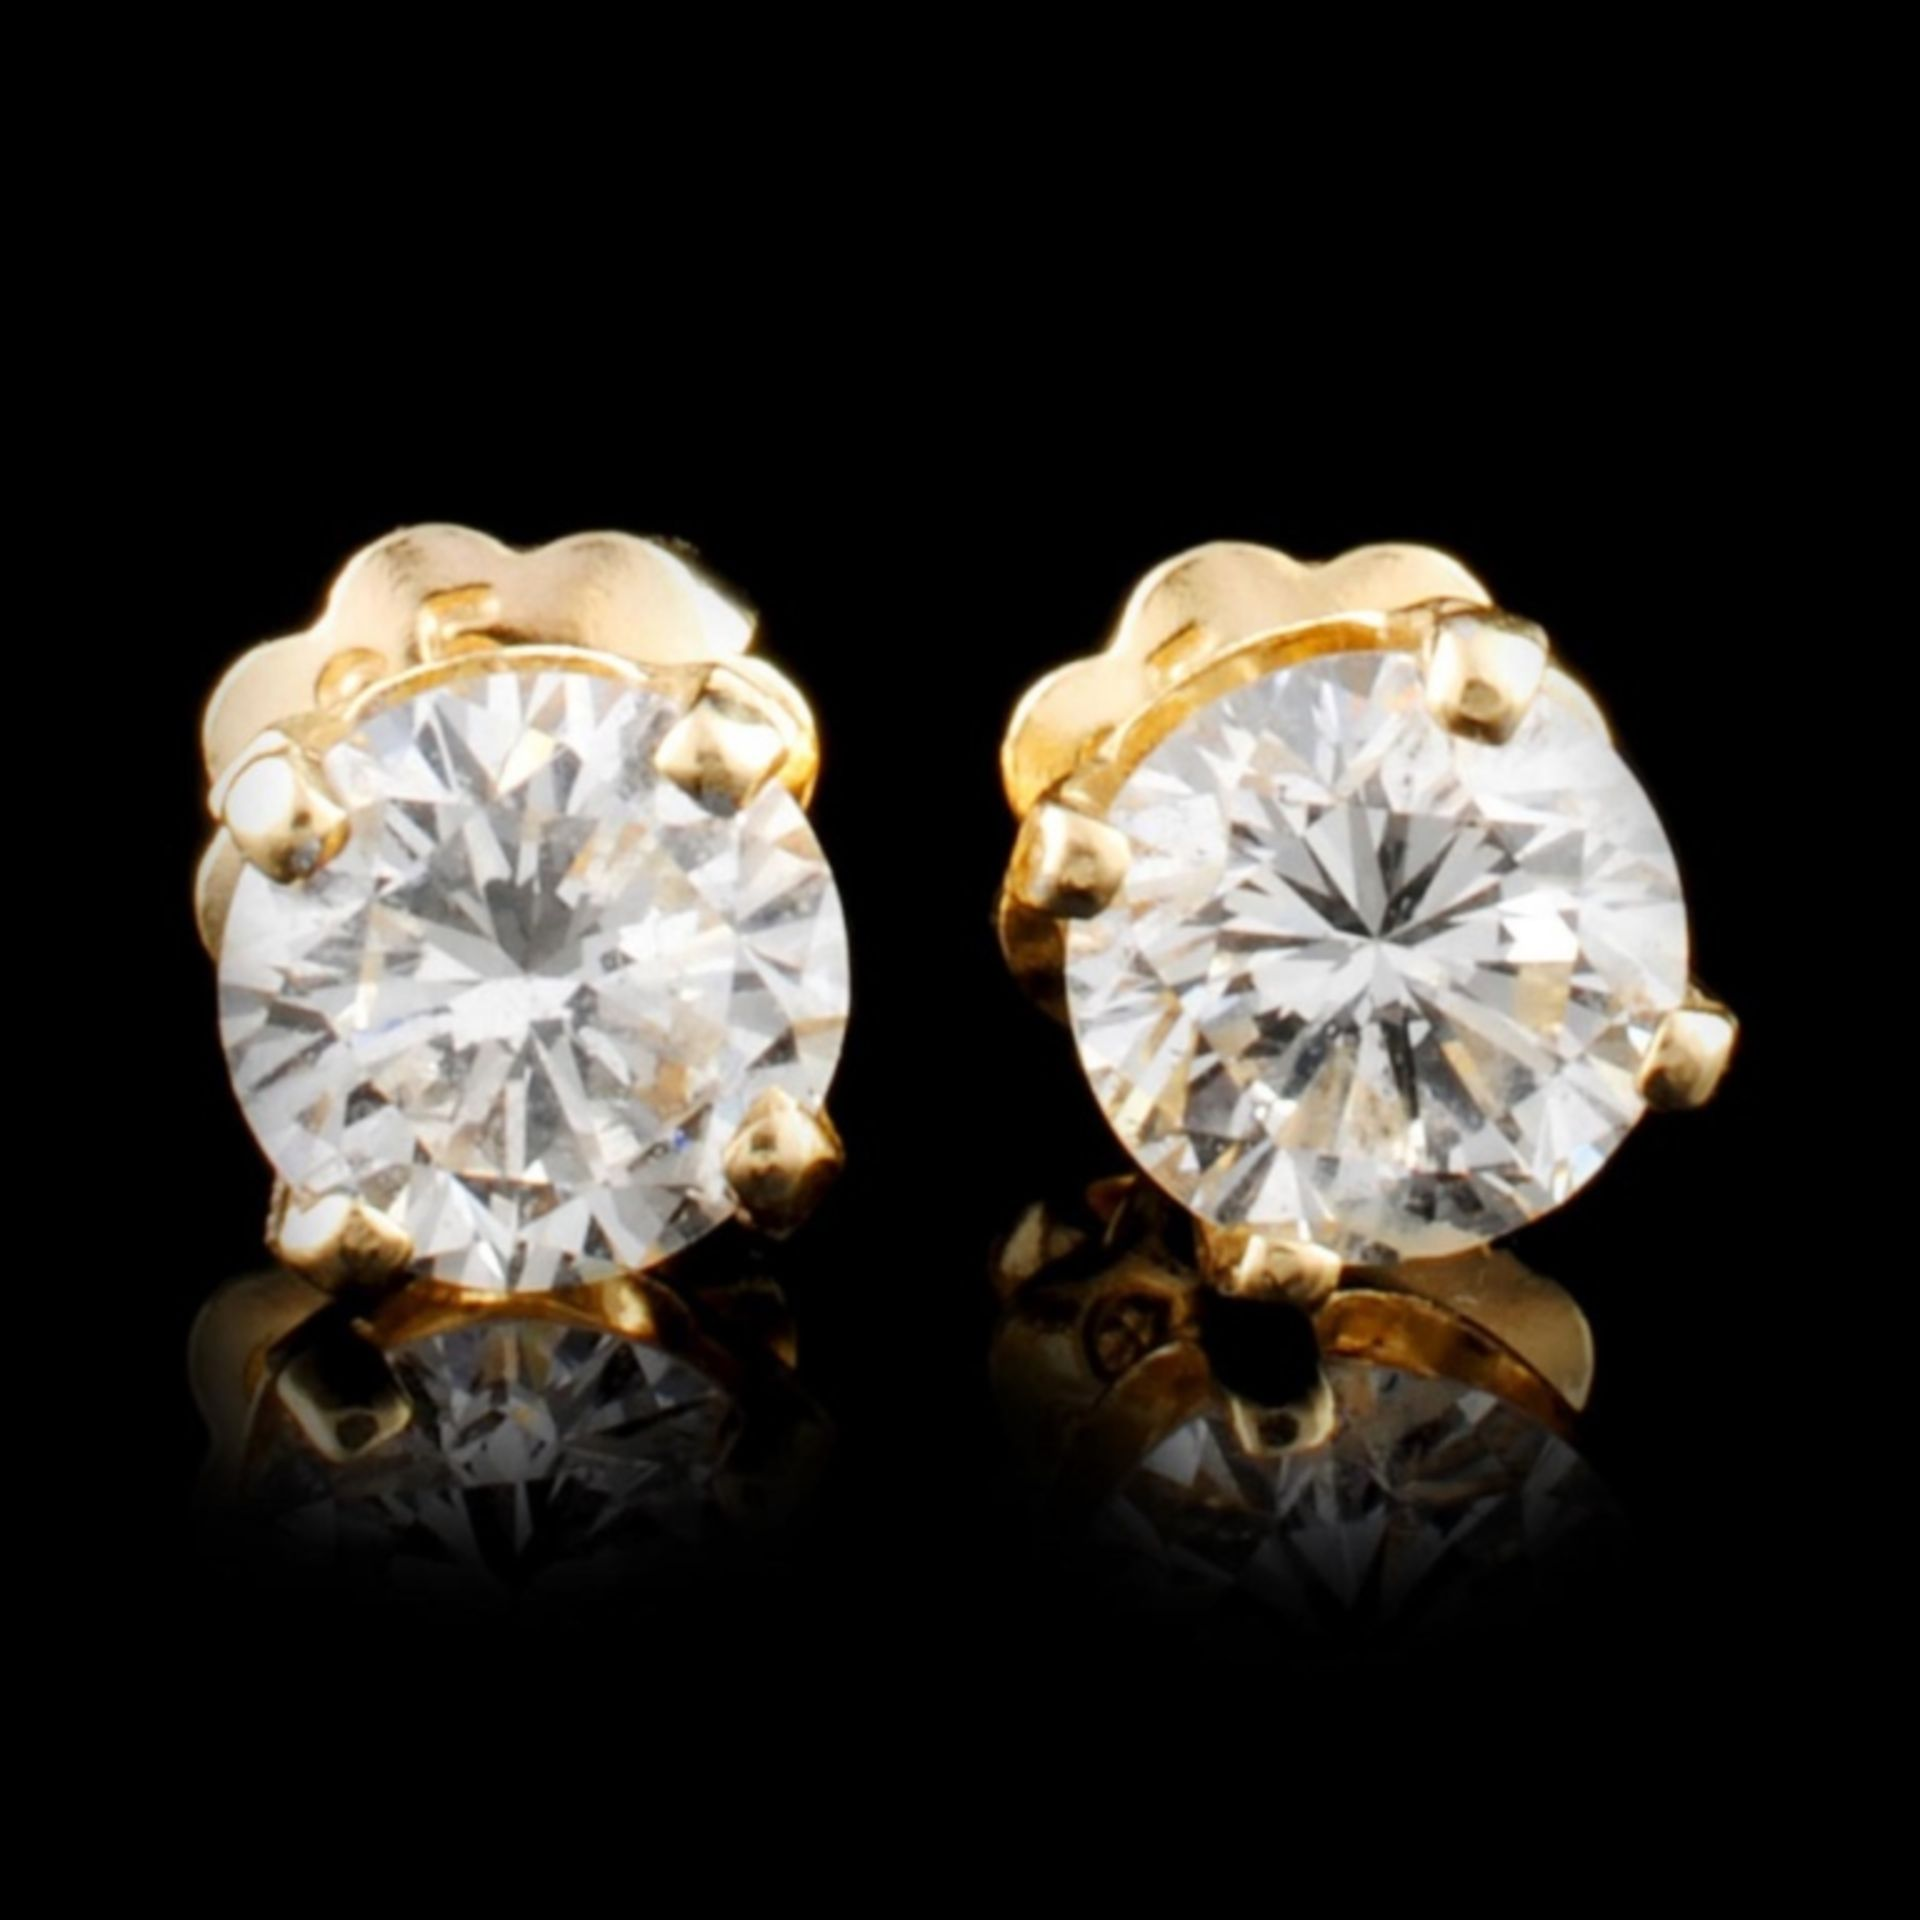 14K Gold 0.58ctw Diamond Earrings